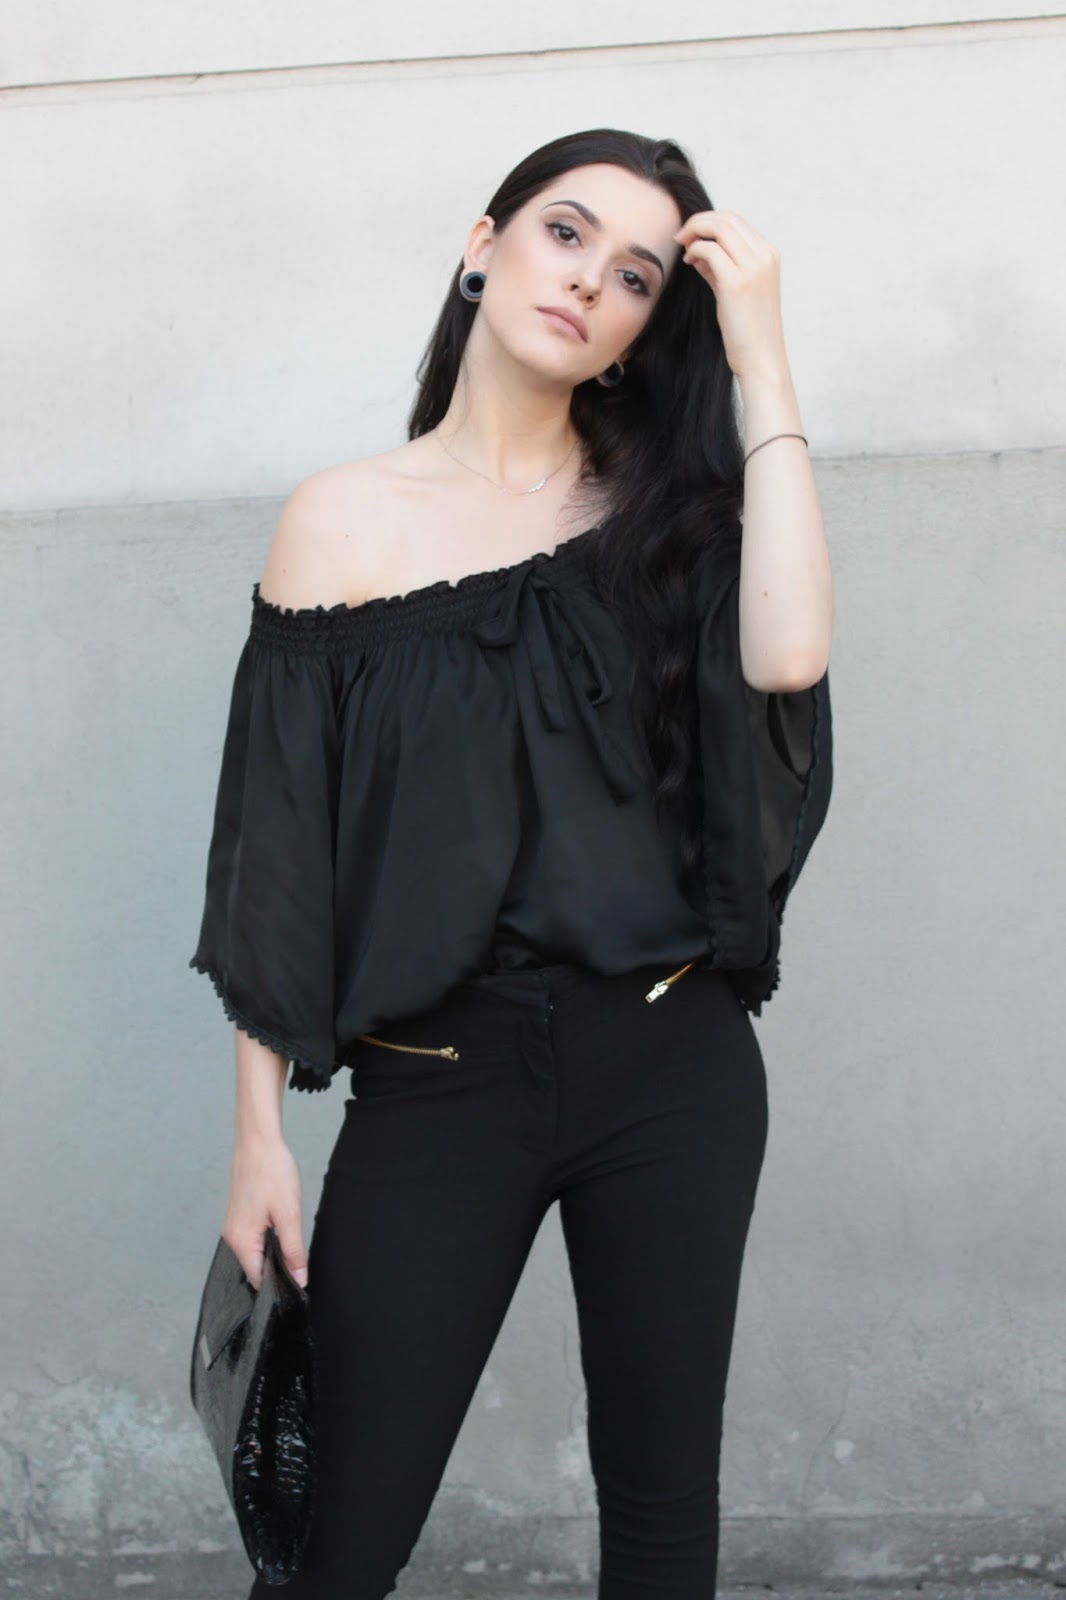 Off the shoulders look, minimalizm